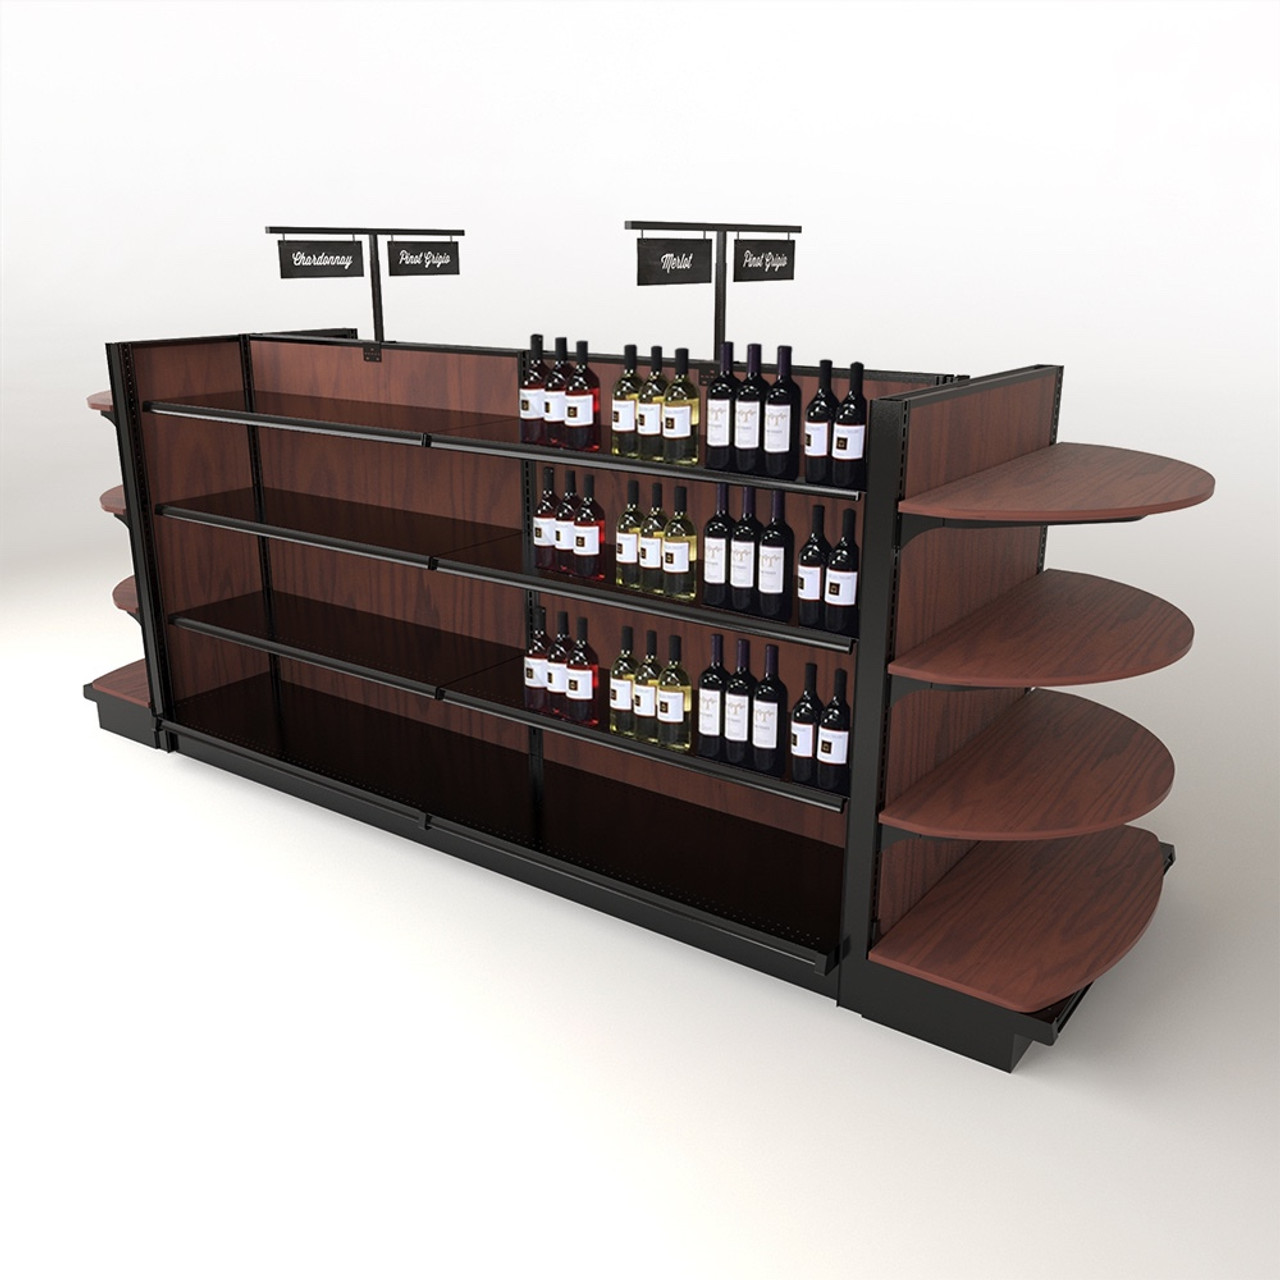 Awe Inspiring Wine Store Display Fixtures Wood Gondola Shelving Kit W End Caps 12Ft Home Interior And Landscaping Mentranervesignezvosmurscom